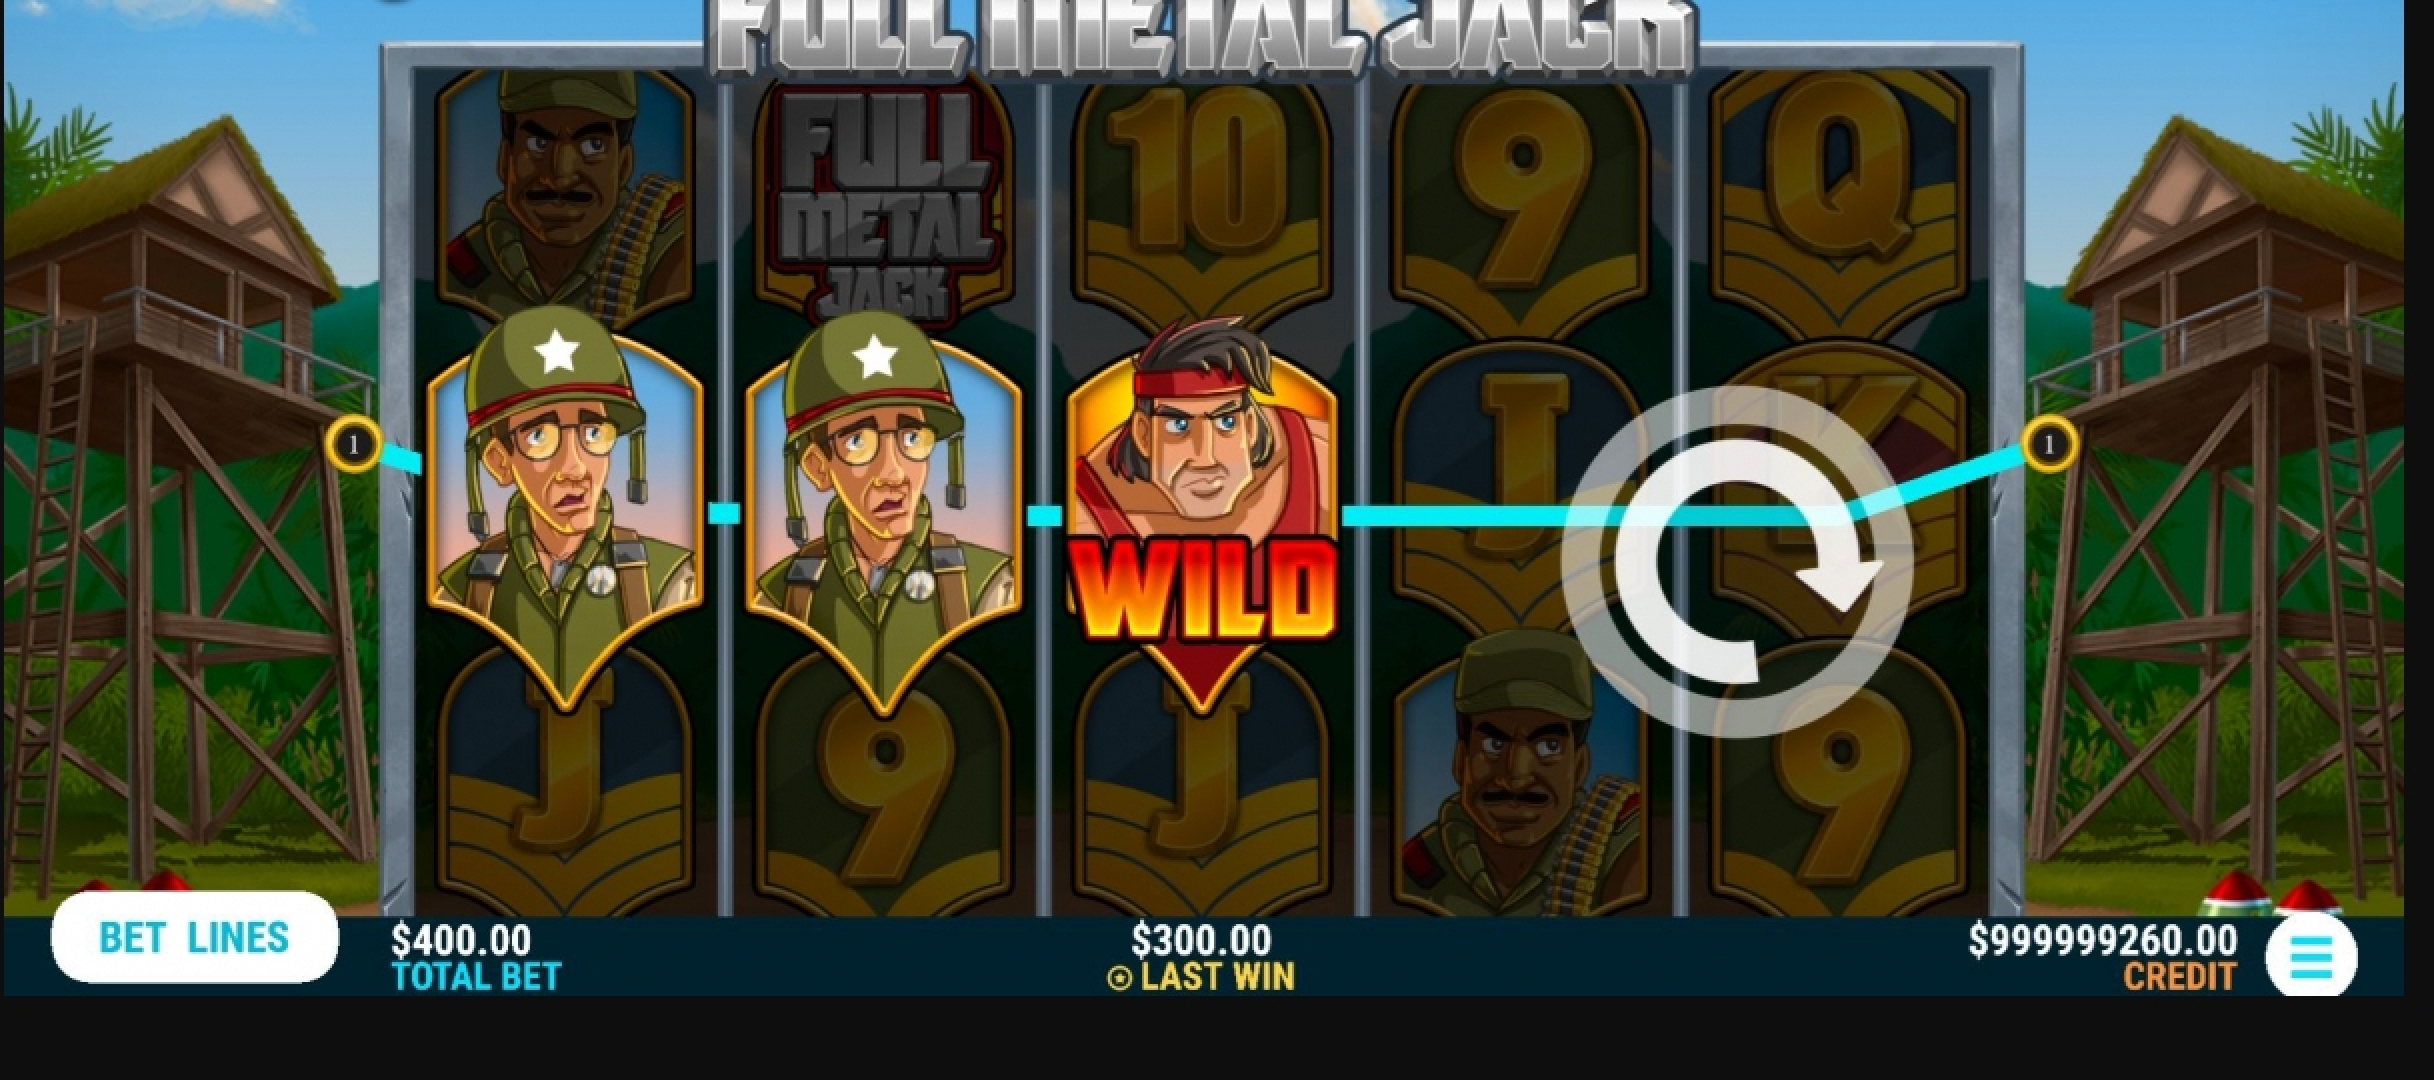 Se Full Metal Jack Online Slot Demo Game, Slot Factory